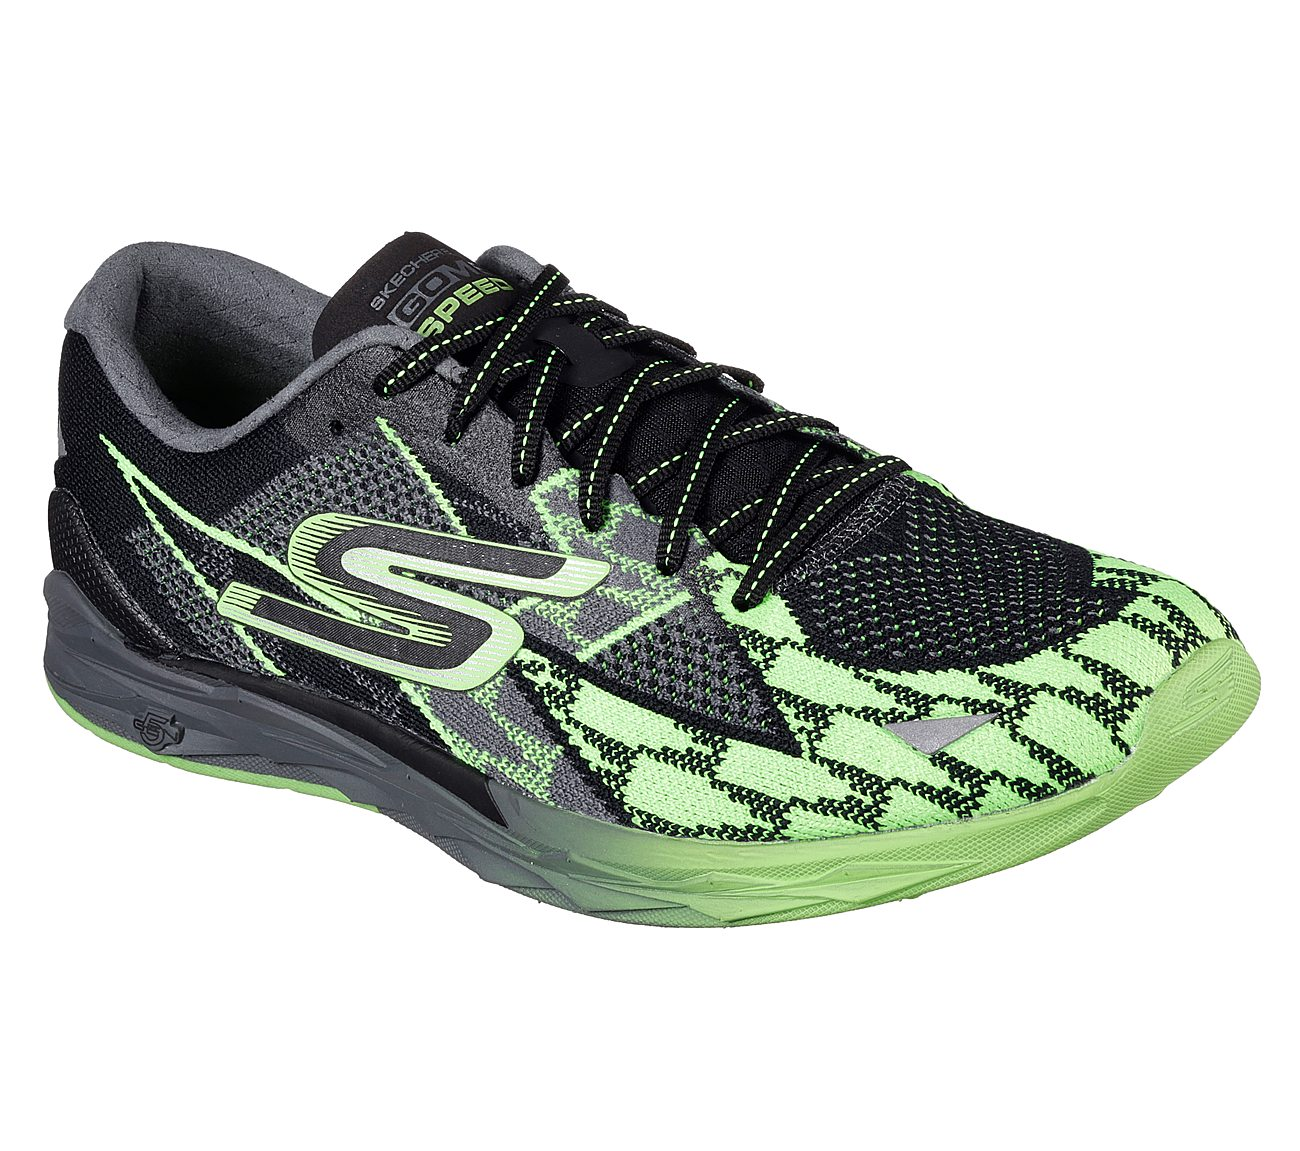 22aaa1059128 Buy SKECHERS Skechers GOmeb Speed 4 Skechers Performance Shoes only ...